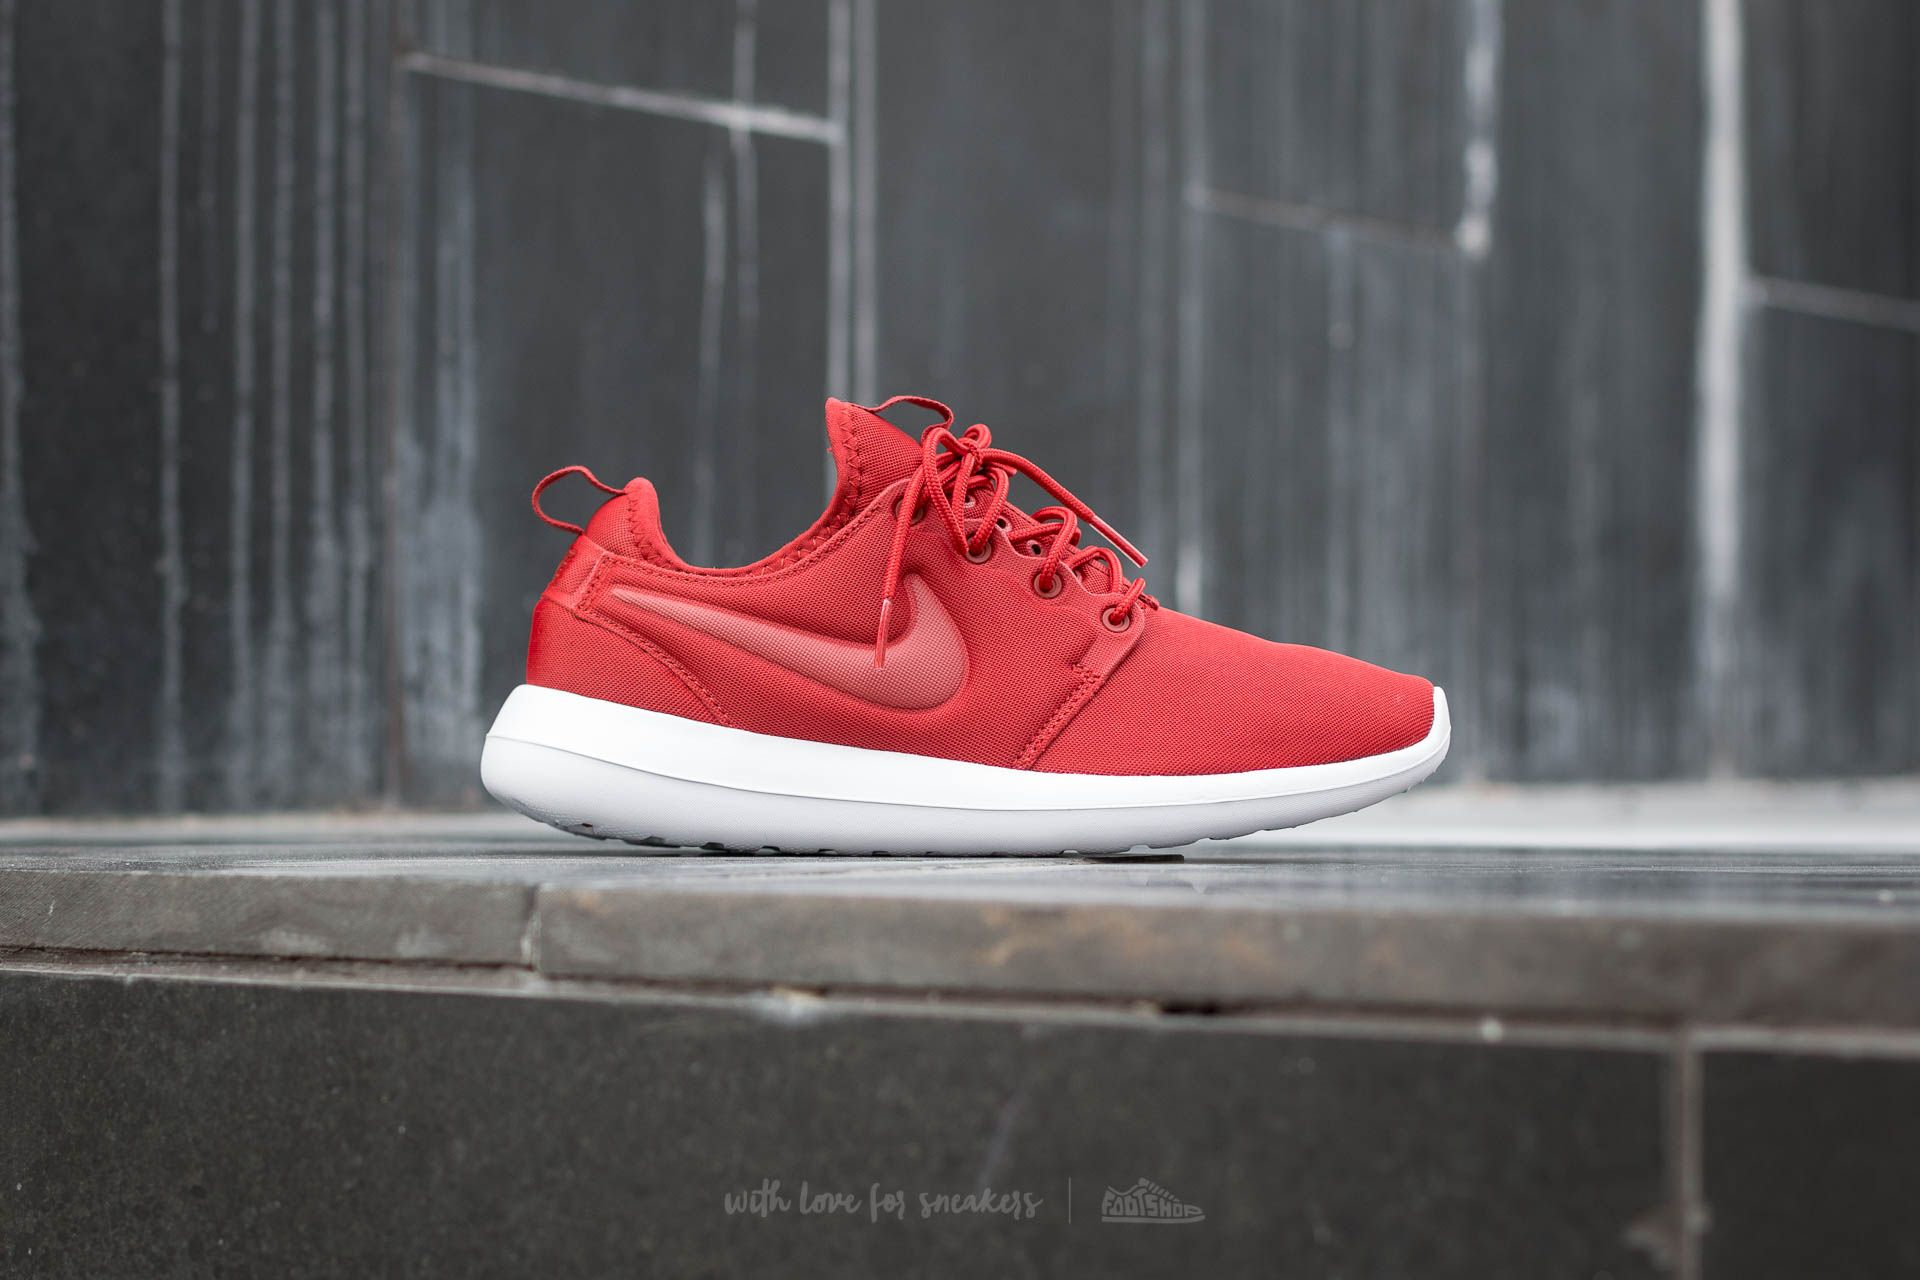 Nike Roshe Two Release Date (and Flyknit!) Nikeblog